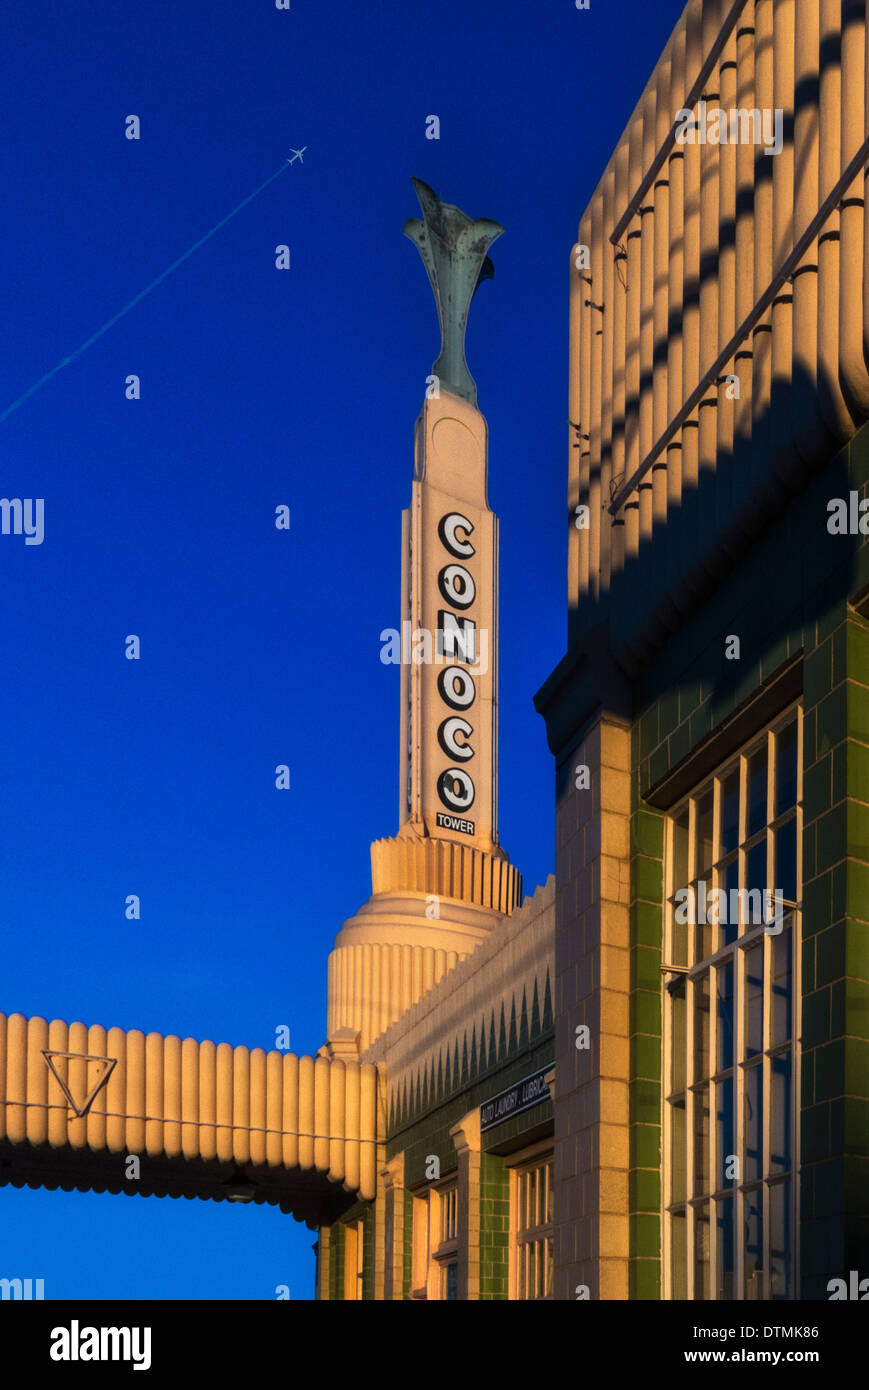 A architectural detail of the iconic Conoco gas Station on old route 66 in Shamrock Oklahoma - Stock Image